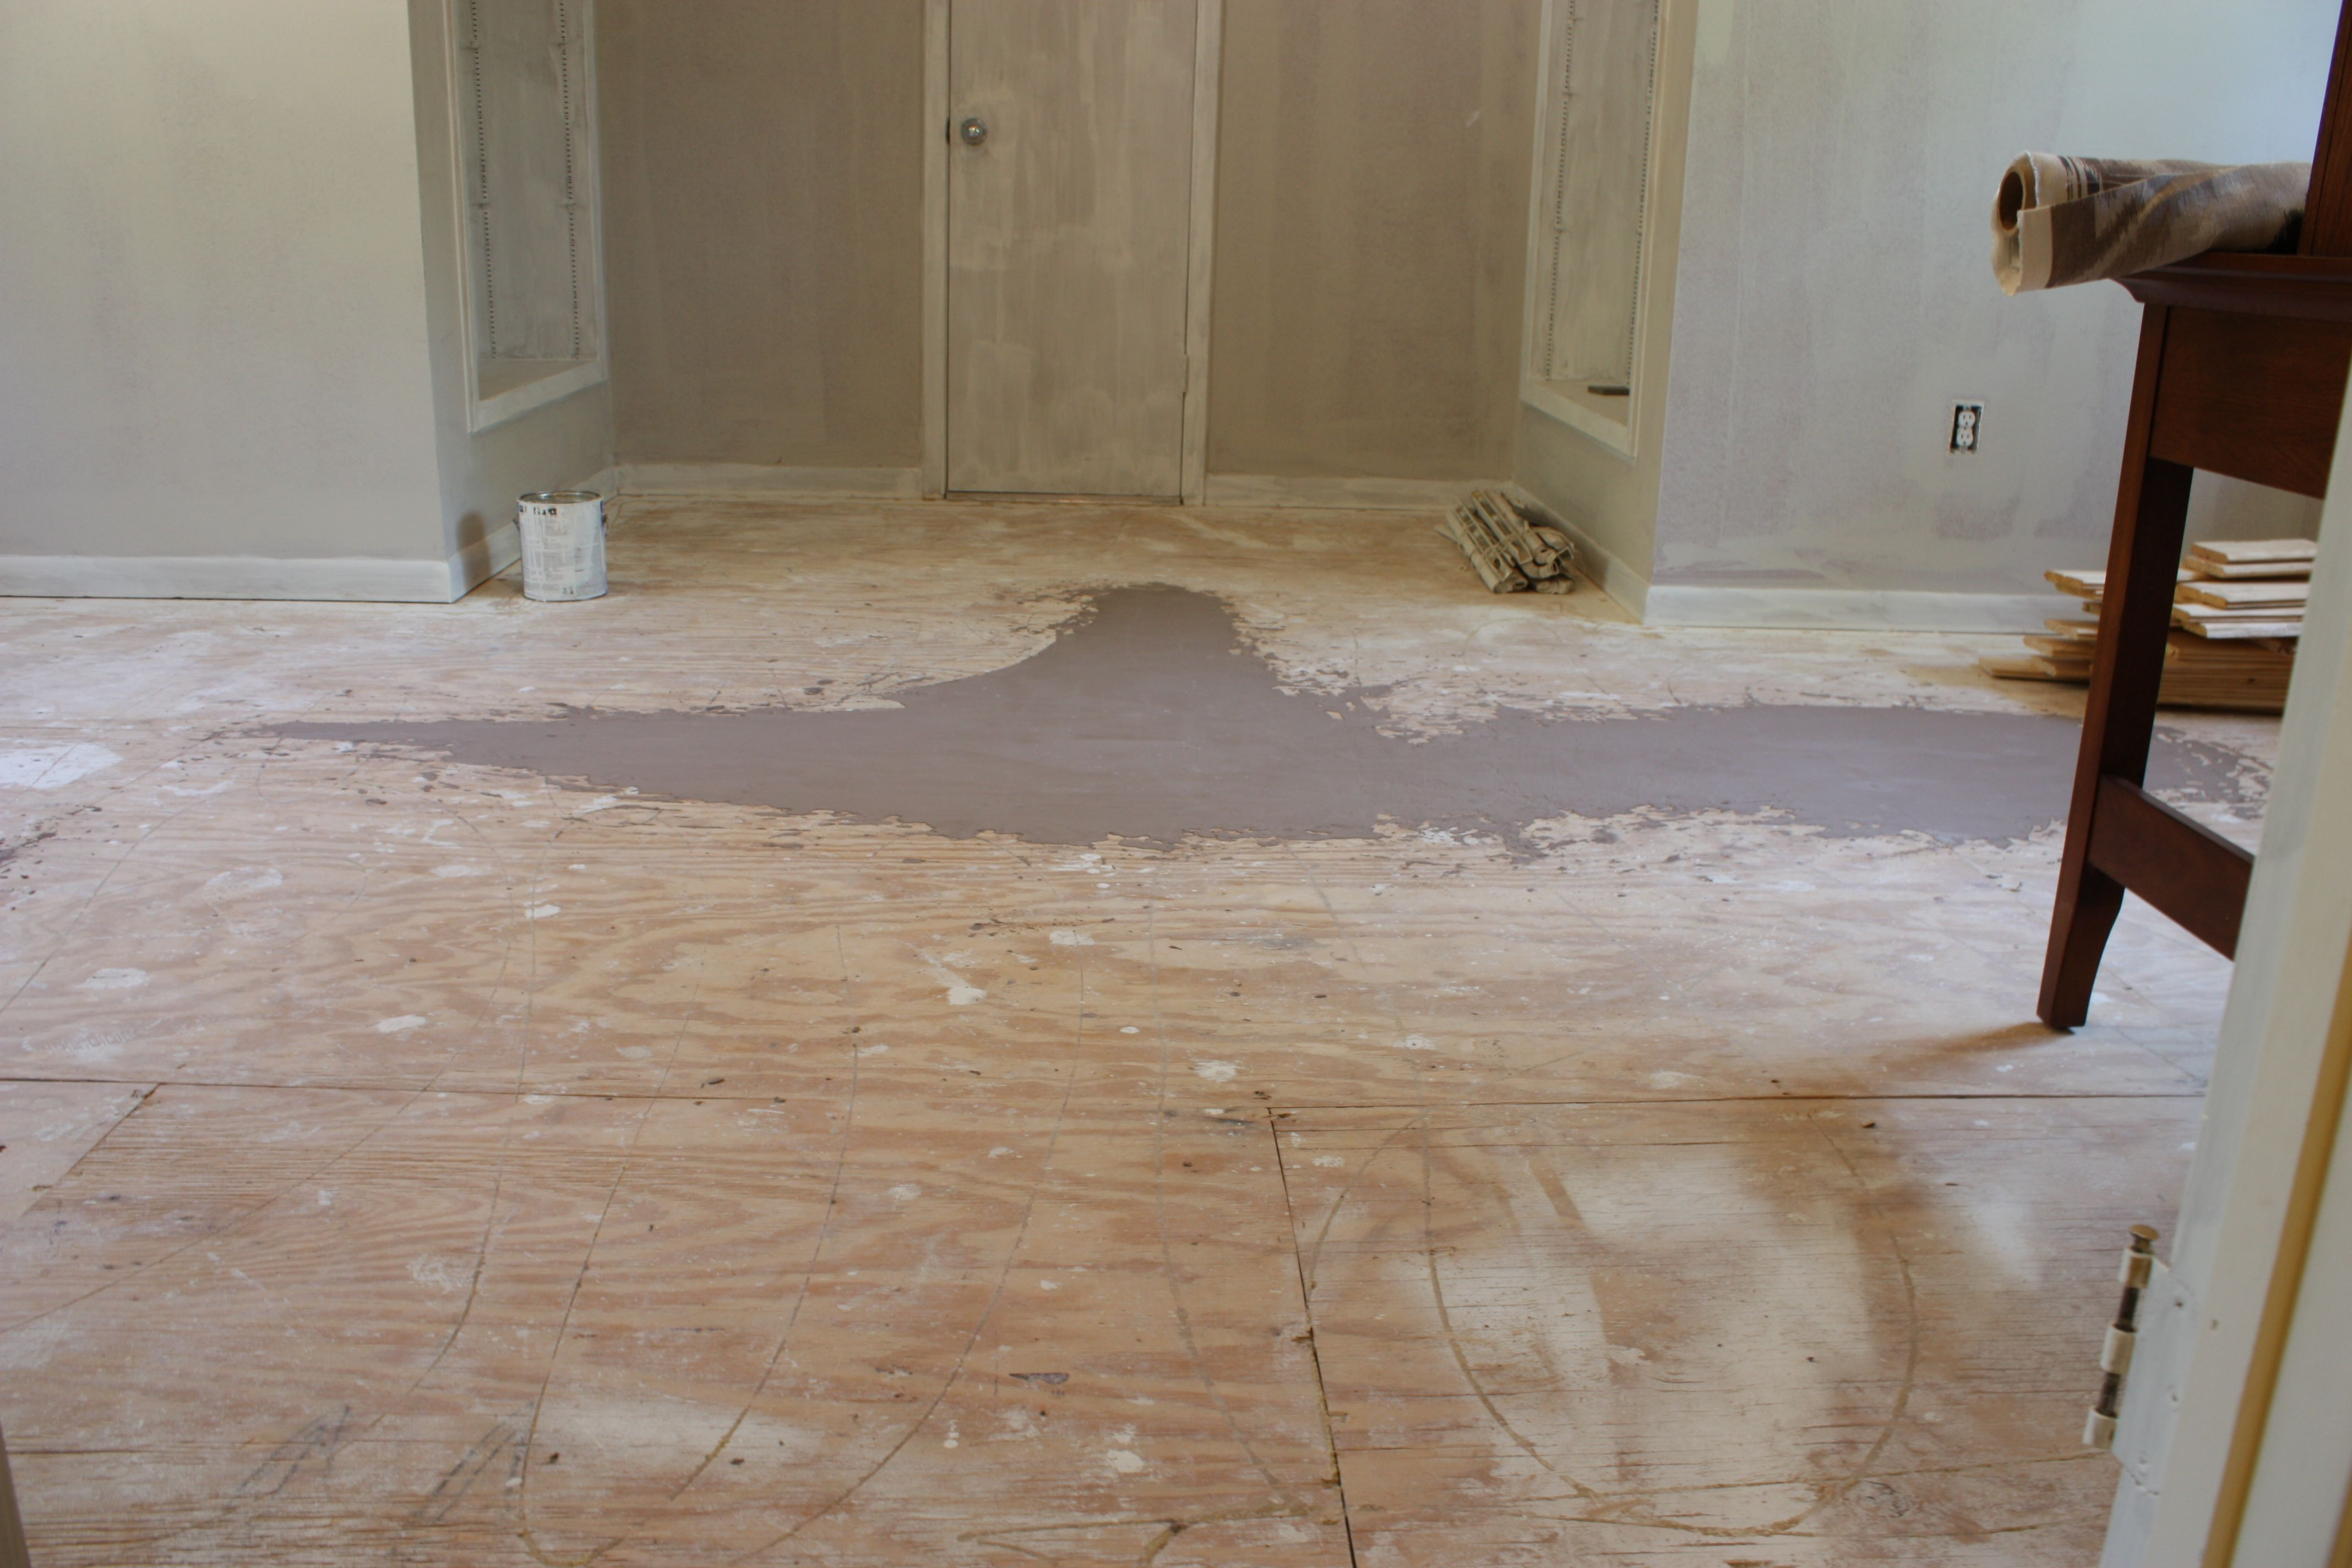 Floor leveling compound over vinyl tiles httpnextsoft21 floor leveling compound over vinyl tiles solutioingenieria Gallery